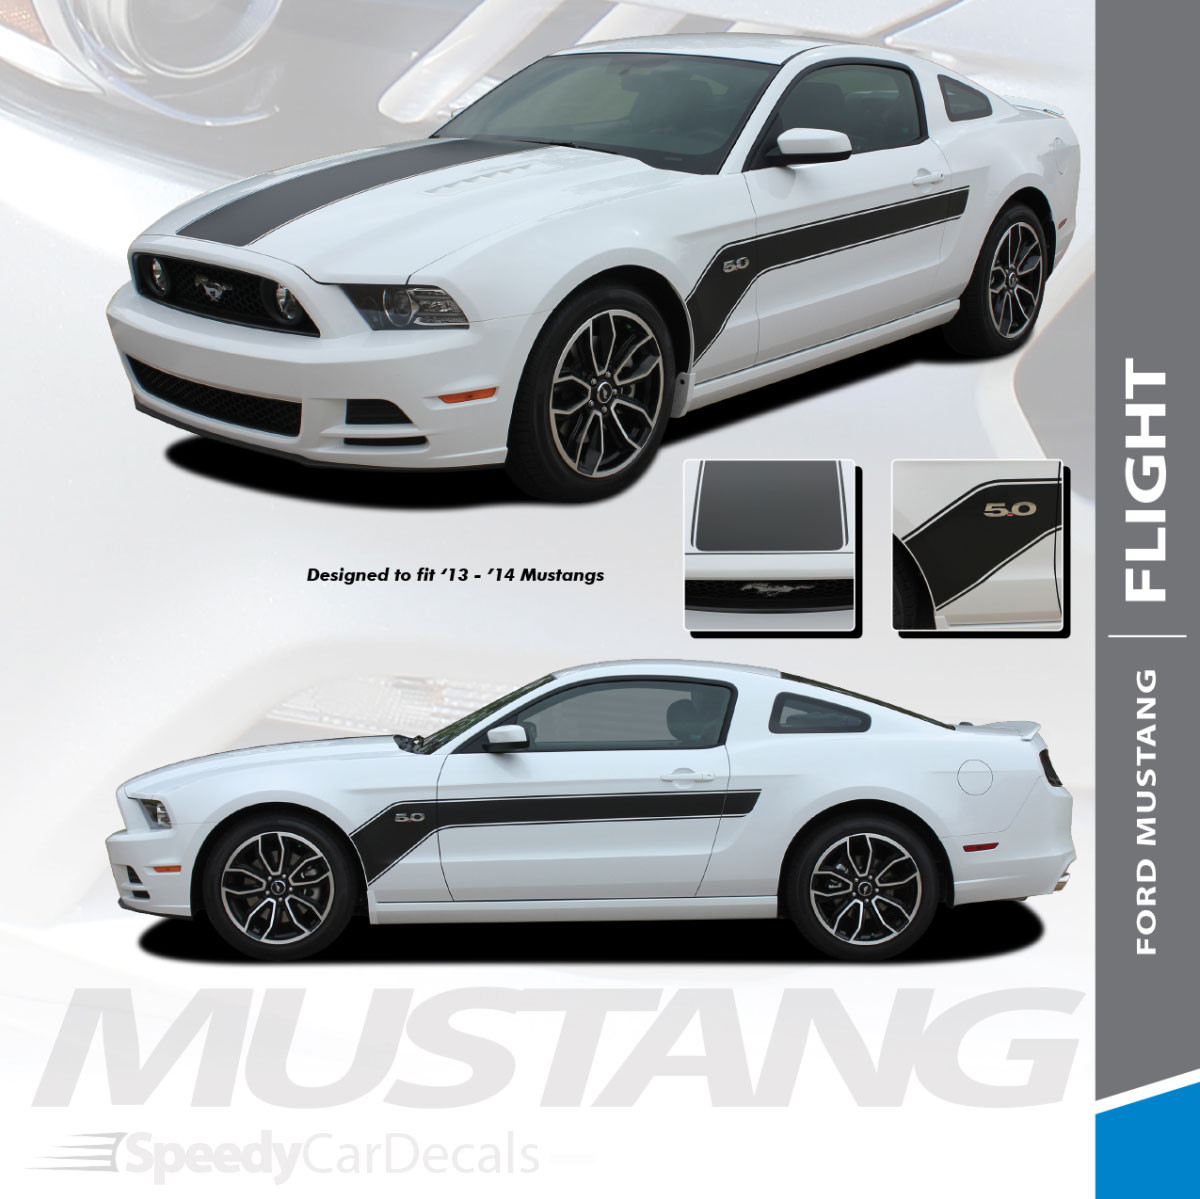 Designs flight 2013 2014 ford mustang hockey stick style hood and side vinyl graphics stripe